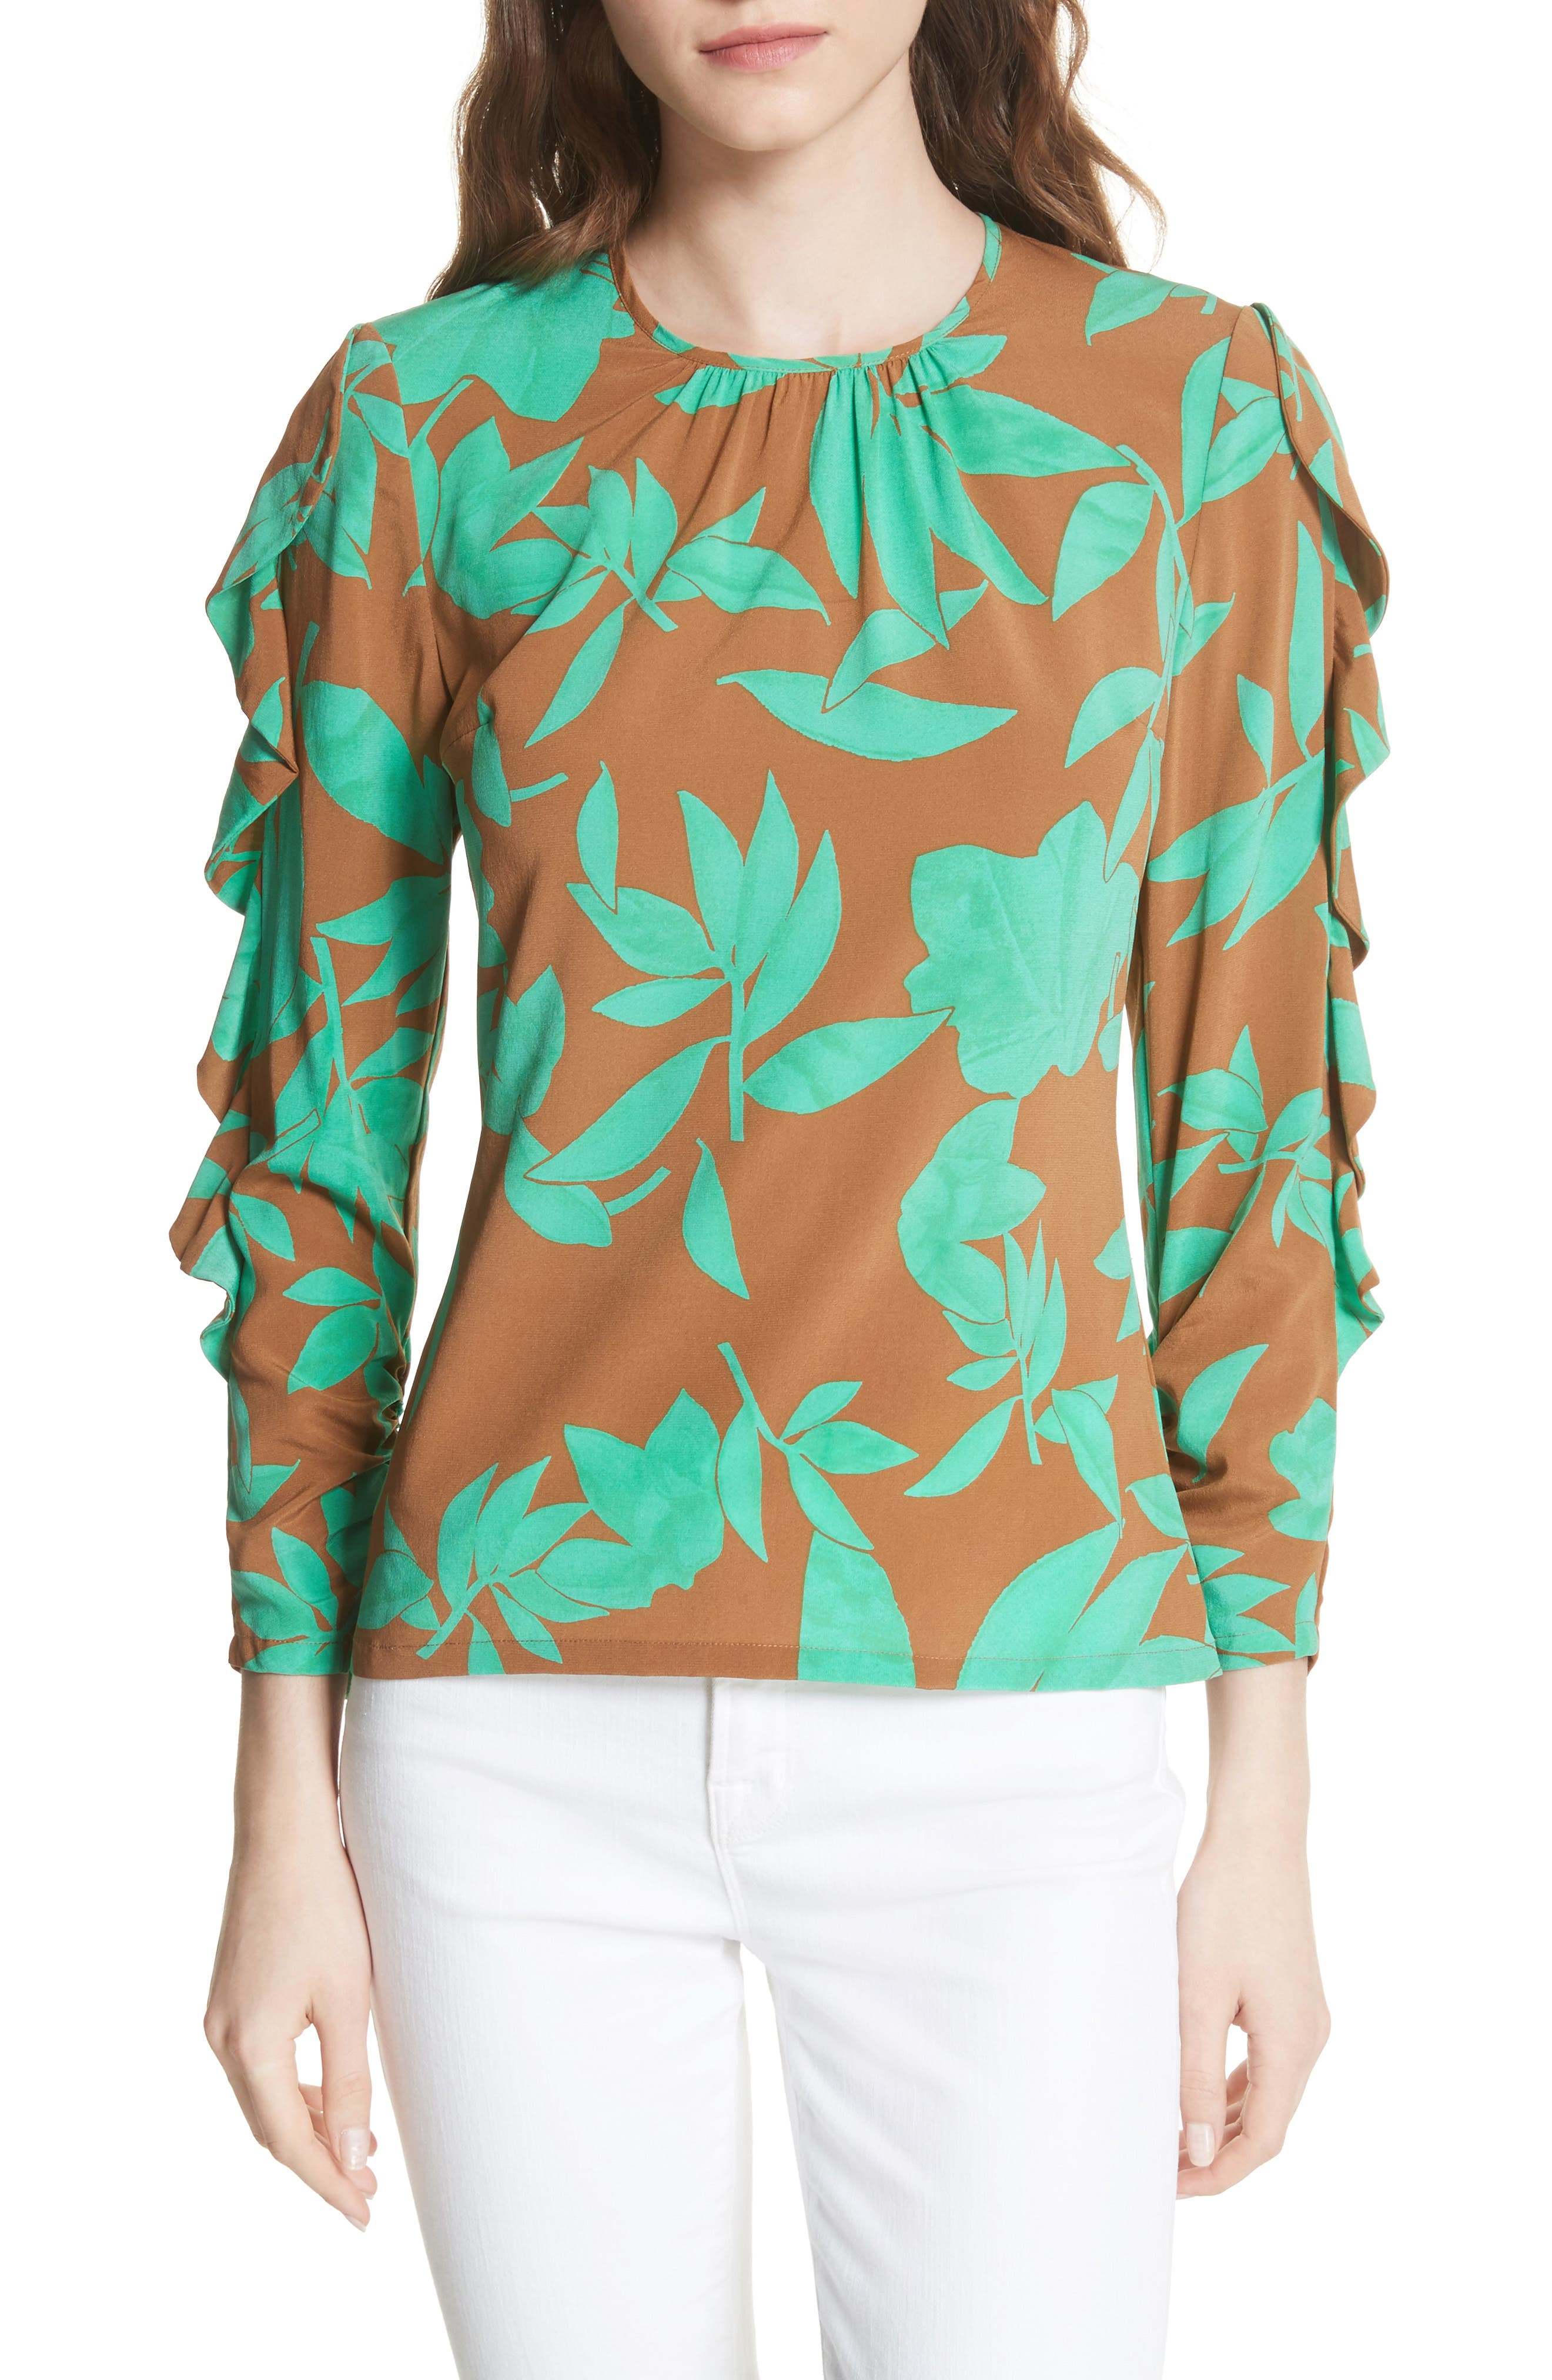 Tracy Reese Frilled Floral Stretch Silk Top